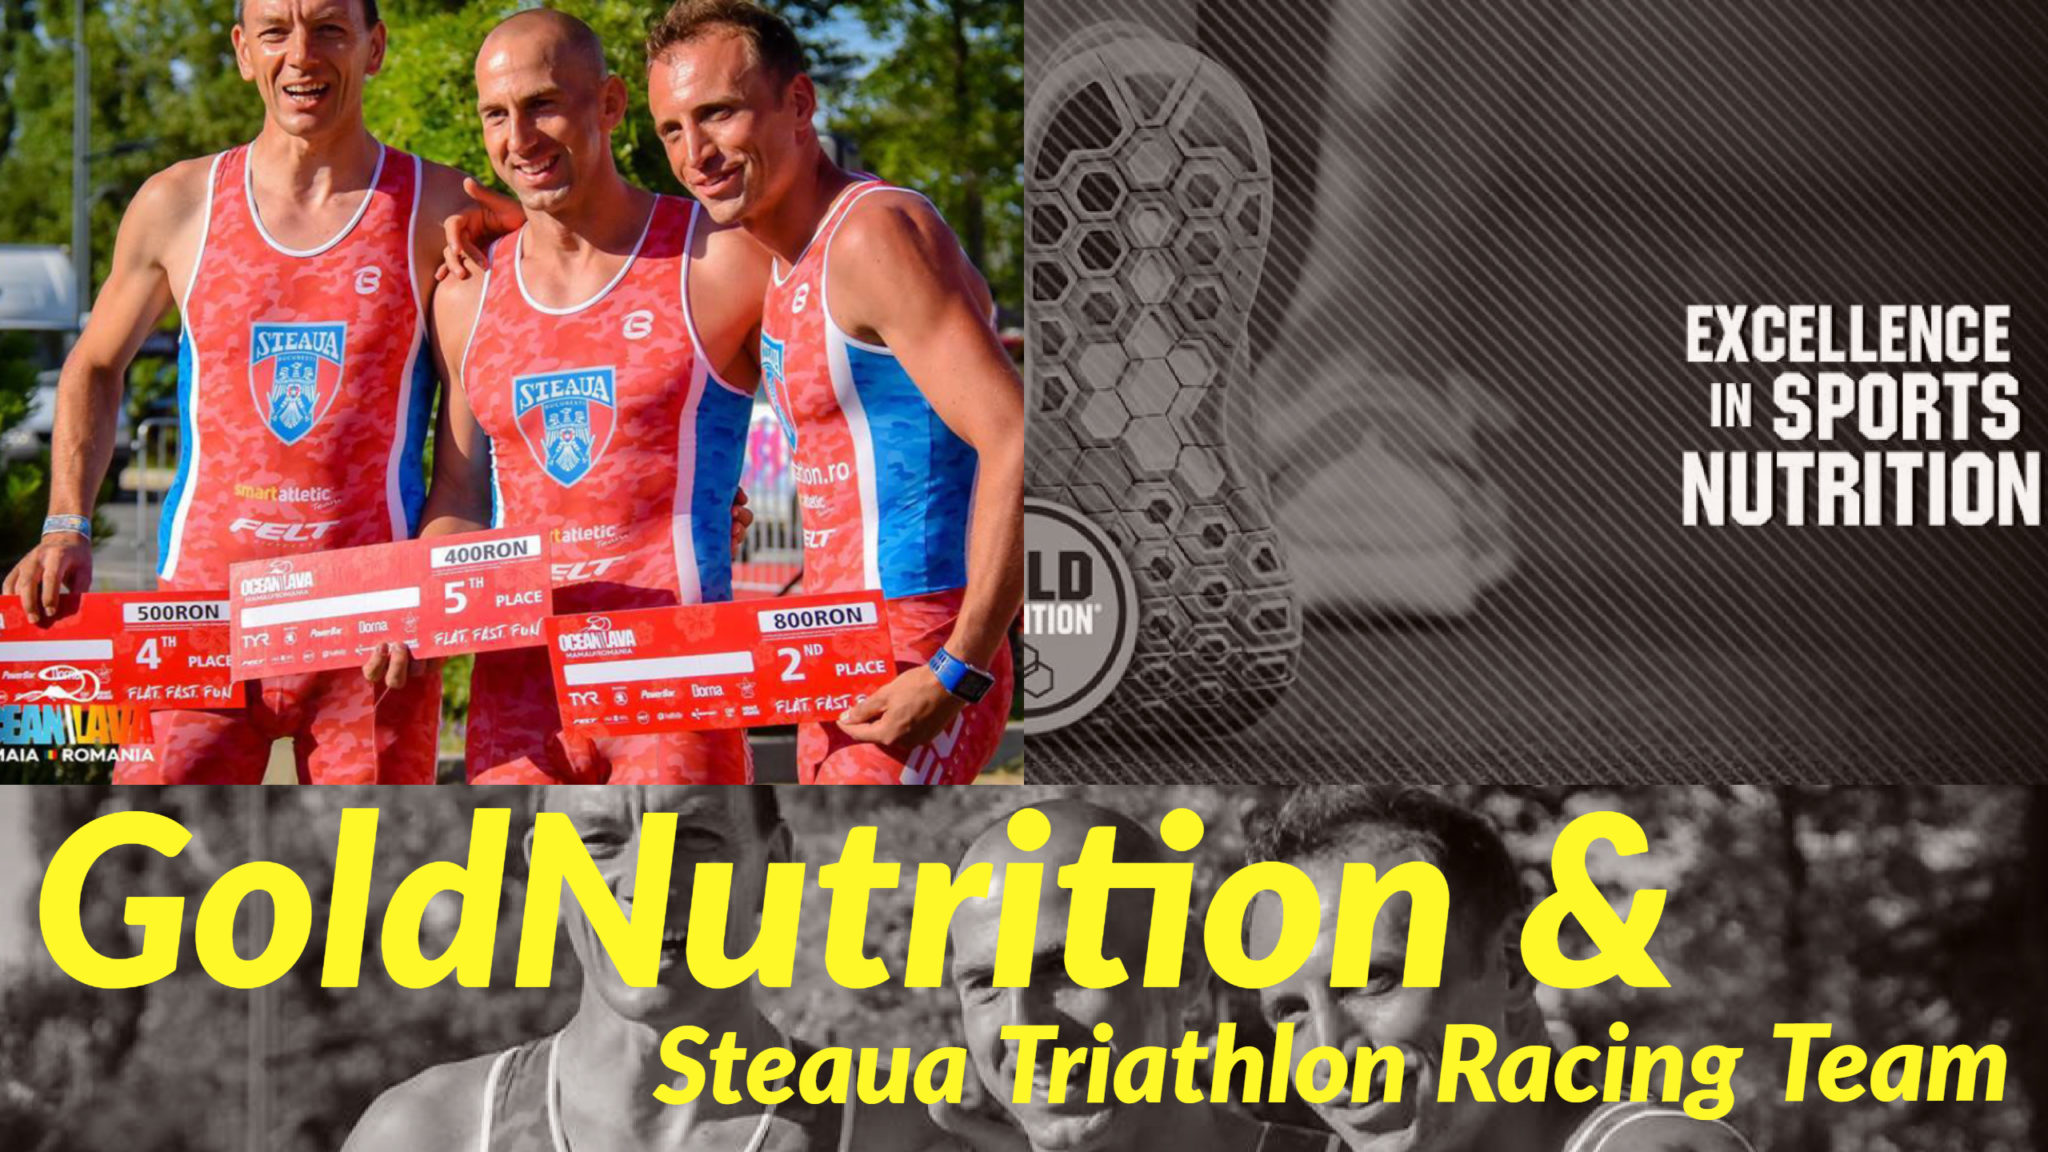 GoldNutrition sponsor Steaua Triathlon Racing Team